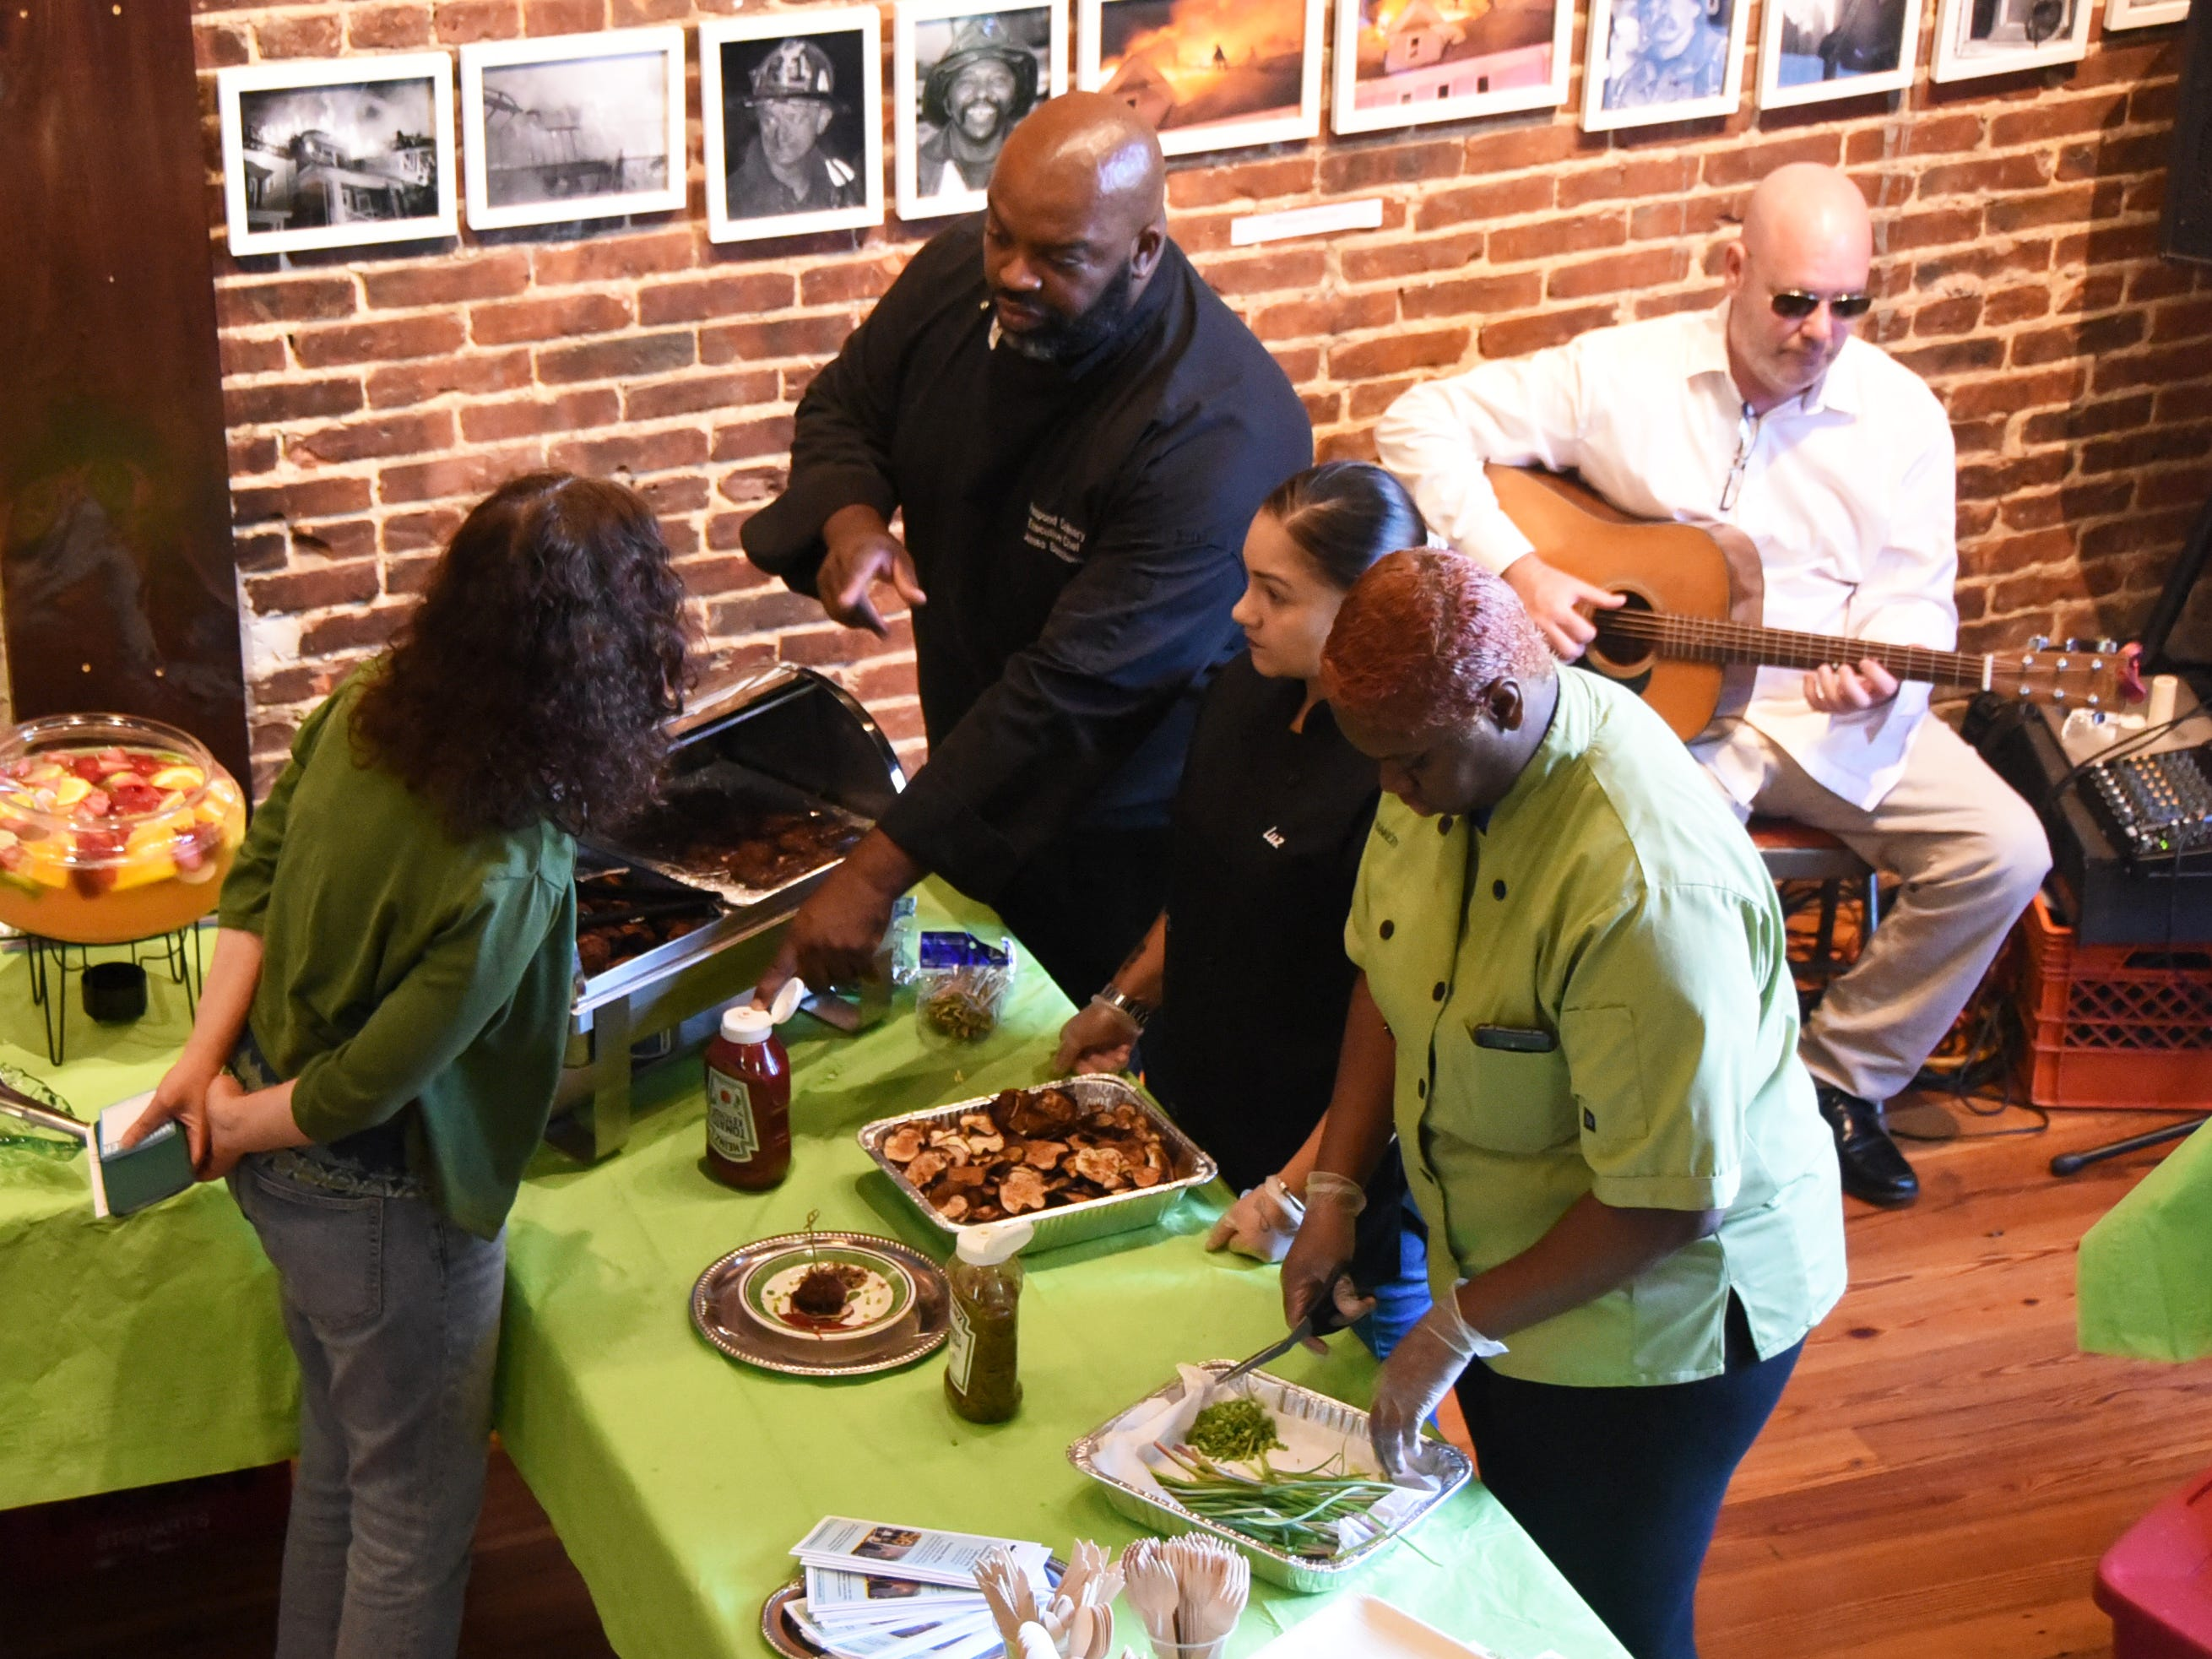 The Courier-Post partnered with the Farm & Fisherman Tavern in Cherry Hill and other community organizations to hold the #WasteNot for CFET event at the FireWorks Gallery in South Camden on Saturday, September 29, 2018.  The event offered a special tasting, farm tour and community conversation about reducing food waste.